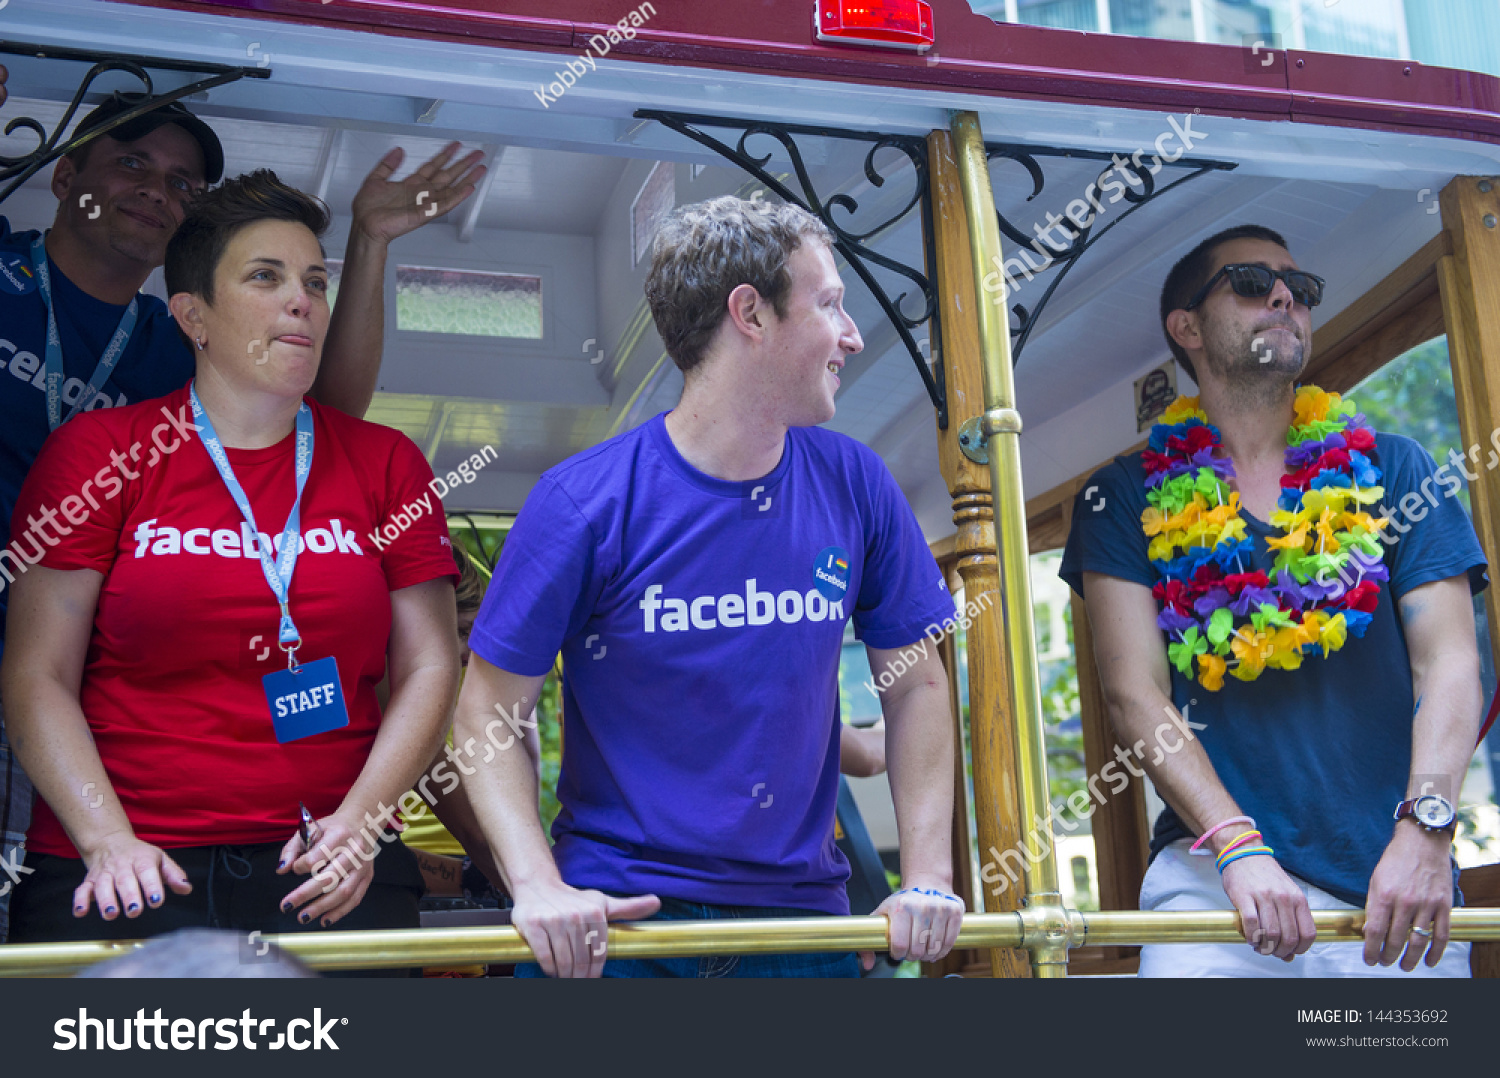 Facebook employees stock options